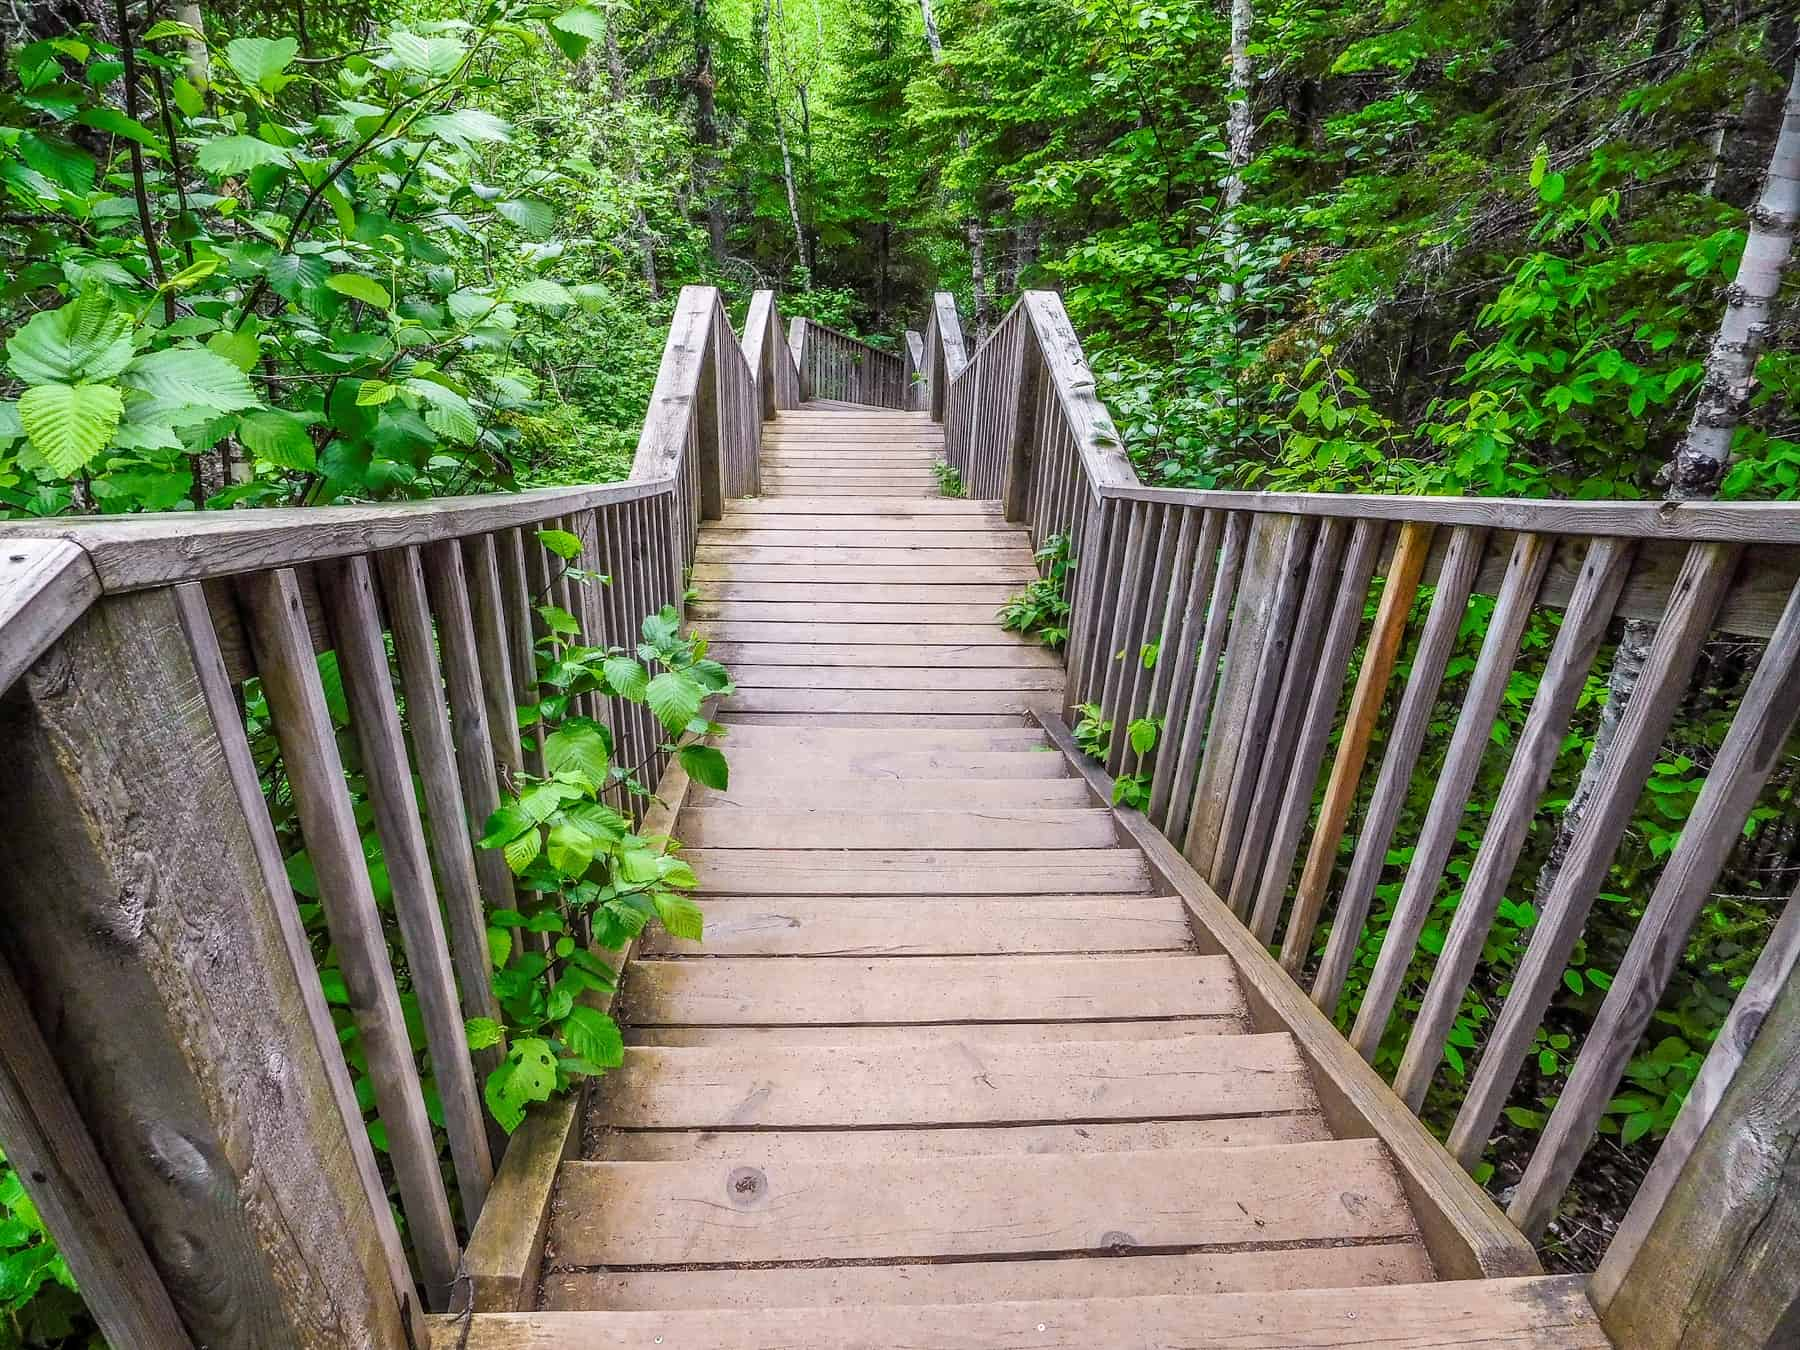 The hike to the Devils Kettle Waterfall includes many stairs